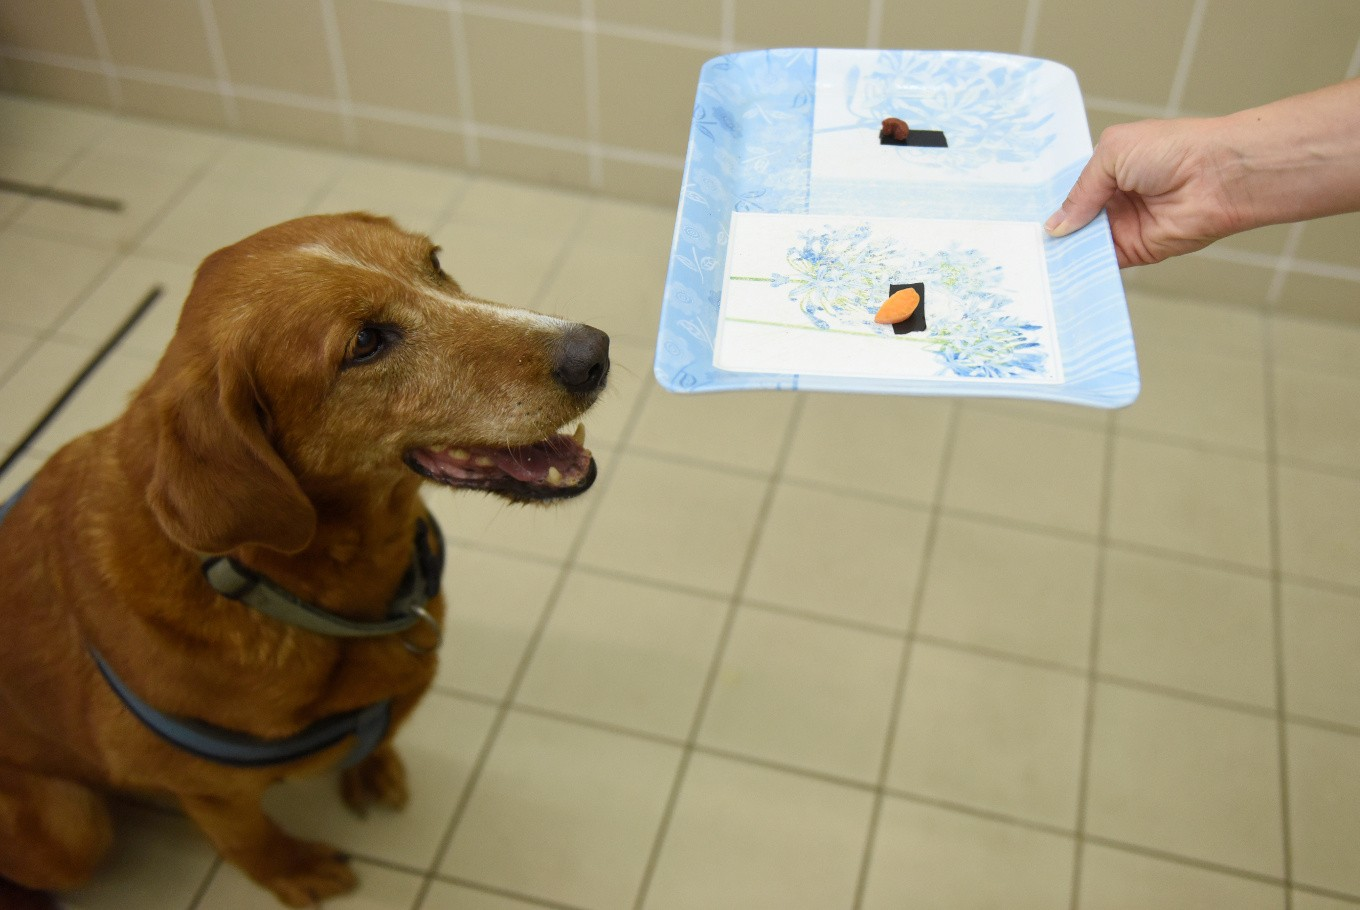 Research on dogs might shed light on human responses to food: Study